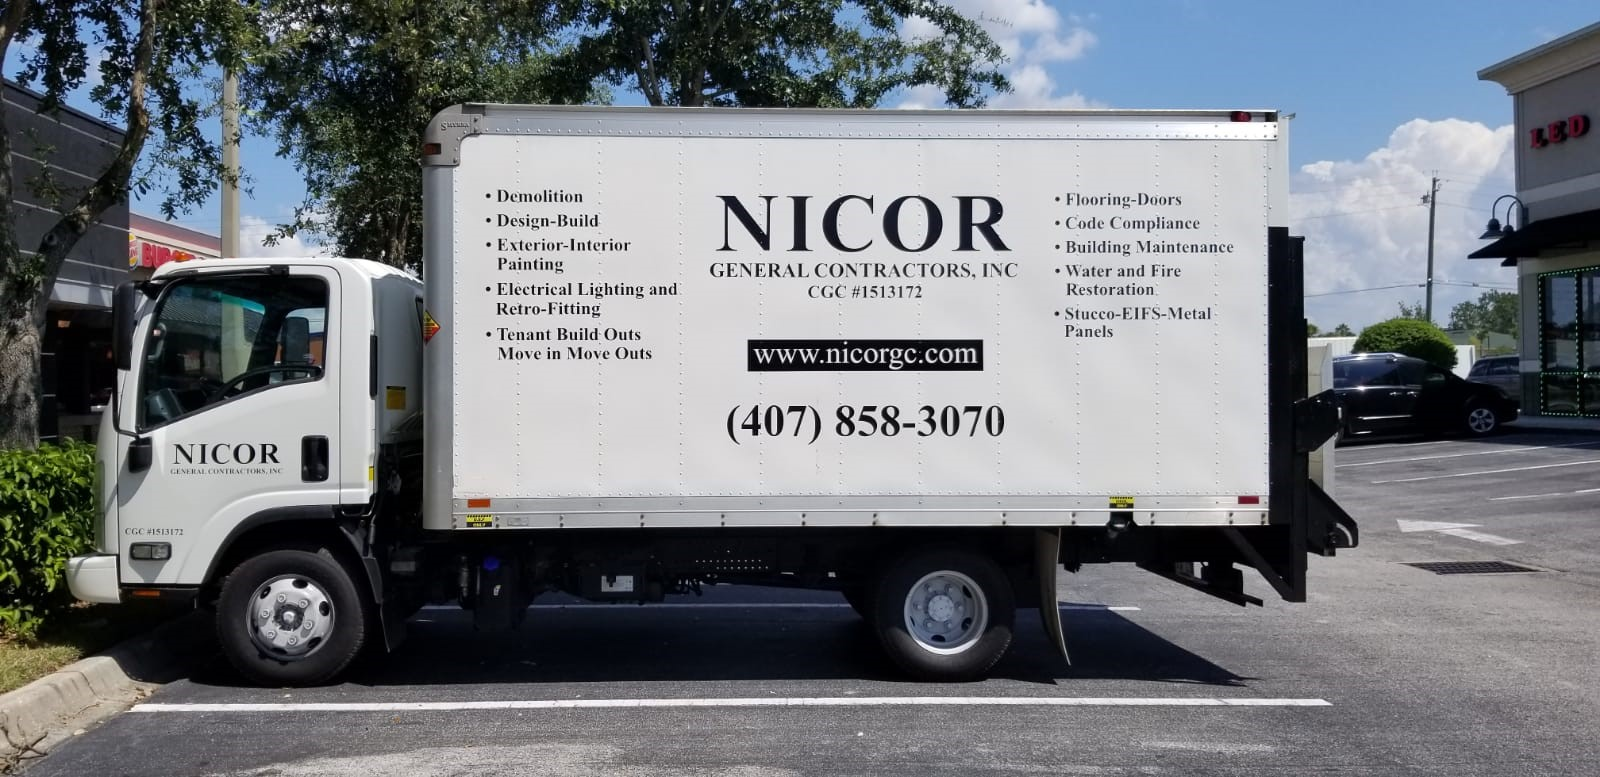 Vehicle Decals & Lettering | Custom Signs & Signage | Builder & Contractor Signs | Orlando, FL